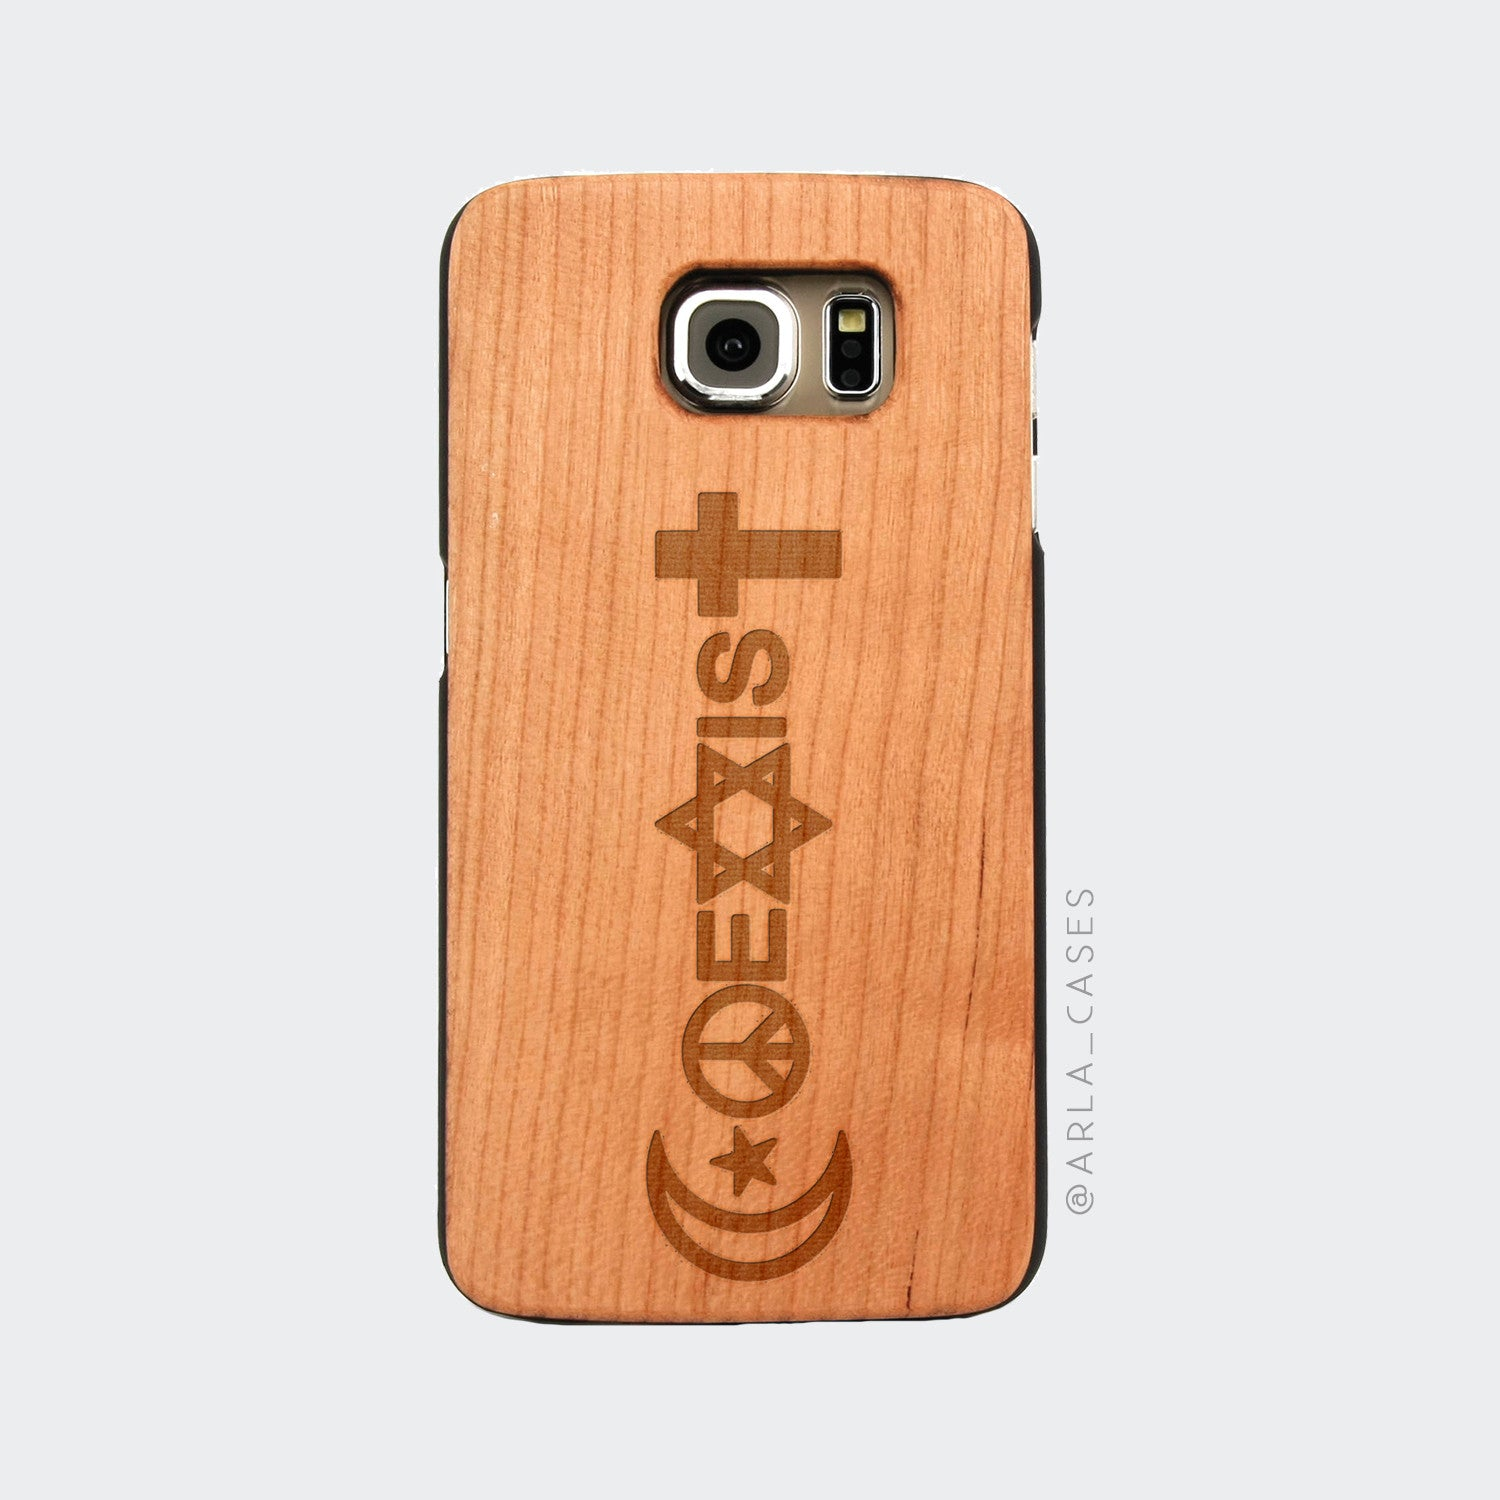 Coexist Wood Phone Case - World Peace iPhone and Galaxy Quote Case